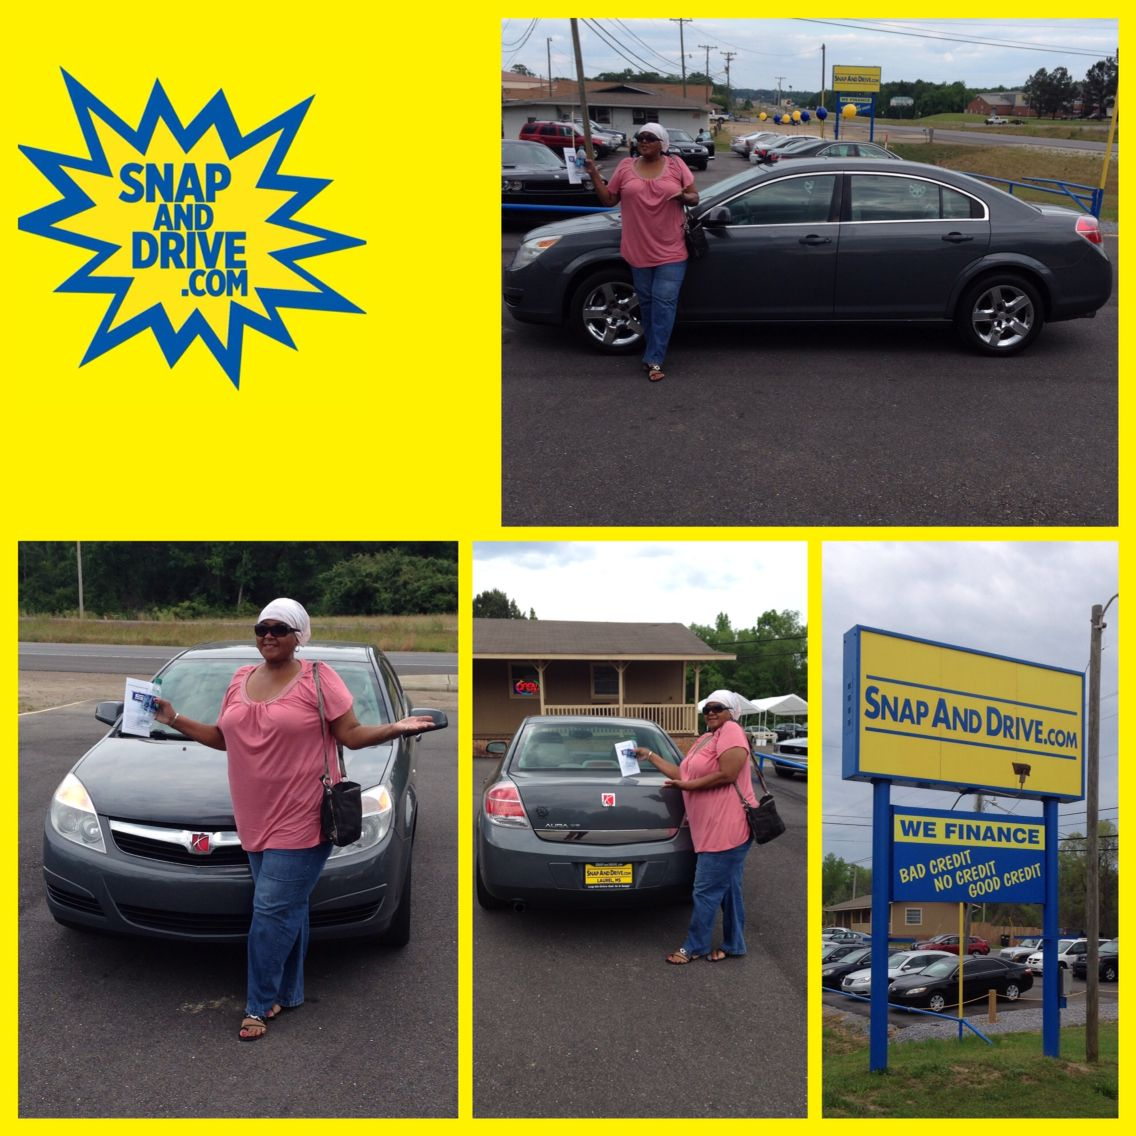 CONGRAT's to Regina Jones ‼️On the purchase of her Saturn Ion ...We thank you for your purchase Regina Jones‼️. Apply now @ www.SnapAndDrive.com to get you one... ✅✅✅EVERYBODY IS APPROVED✅✅✅. IN A SNAP #snapanddrive #getapproved